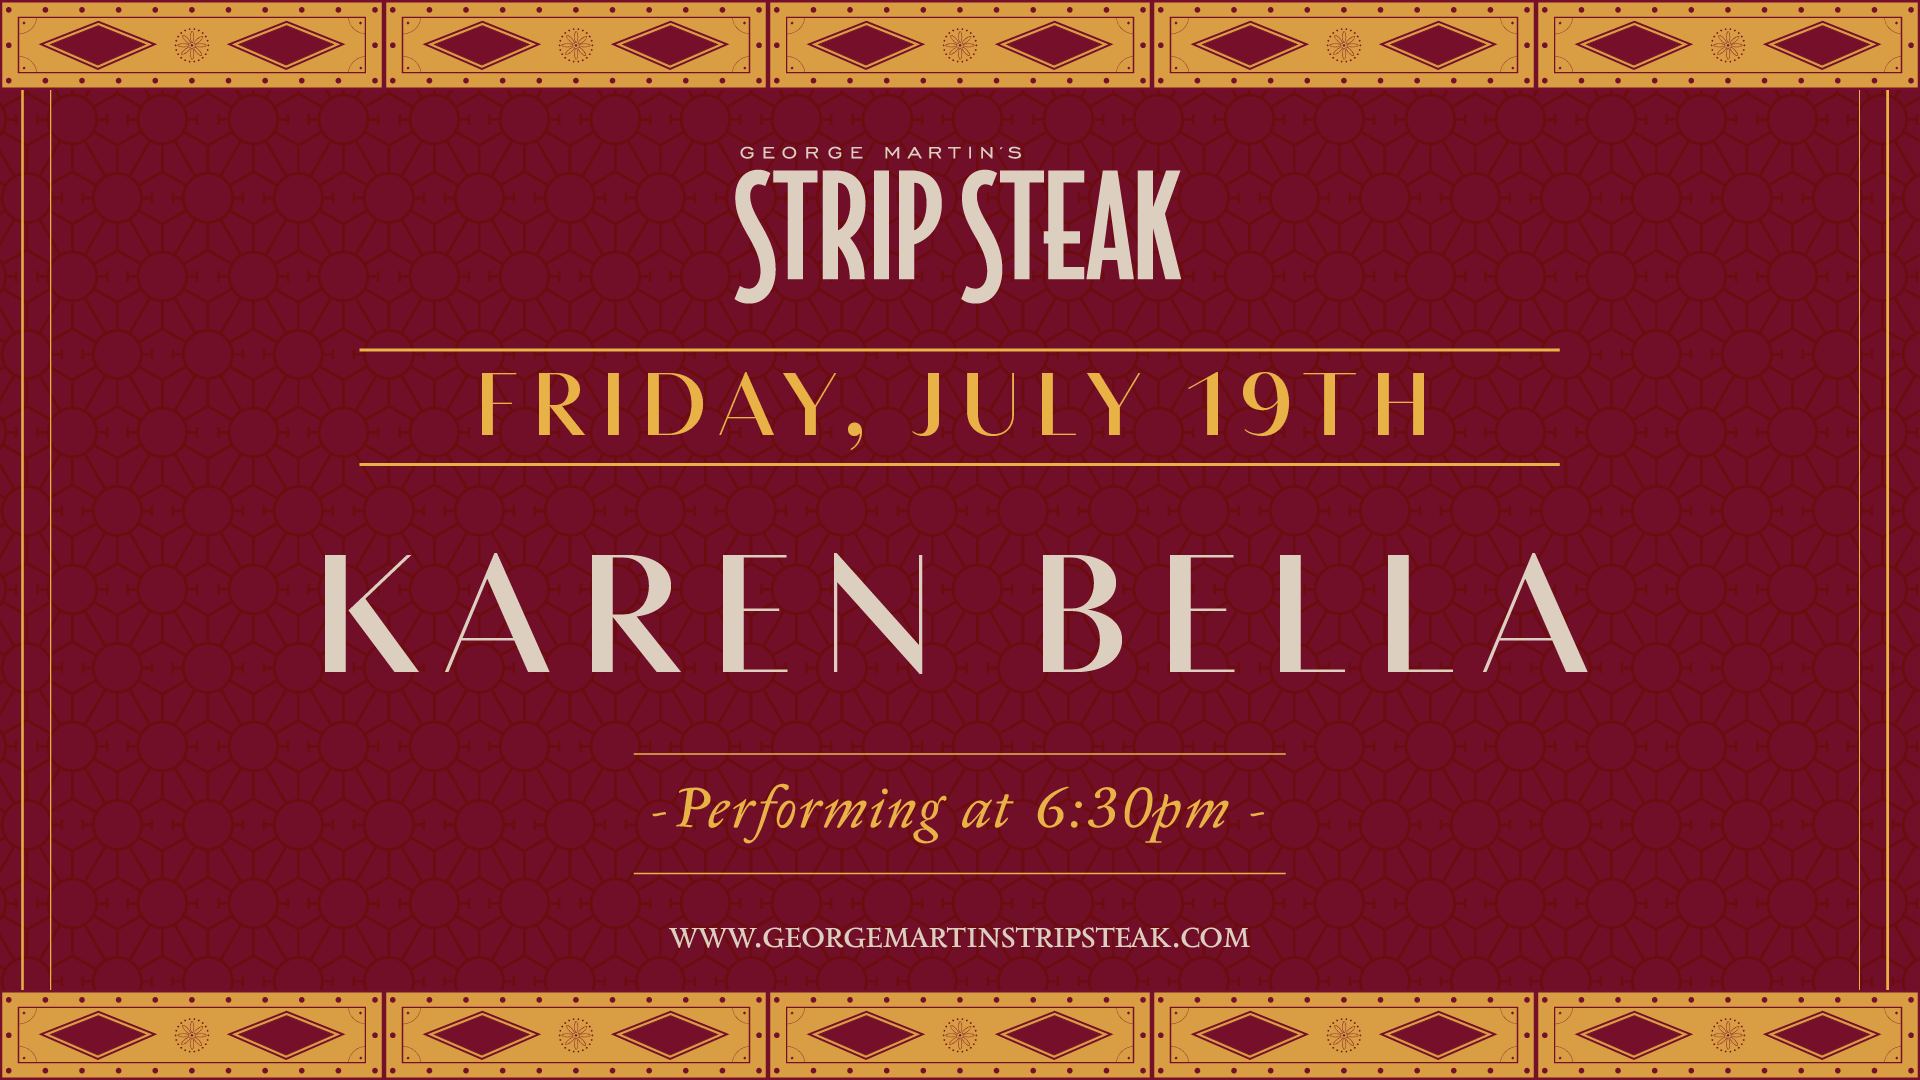 Flyer for live music with Karen Bella on July 19th at 6:30pm.